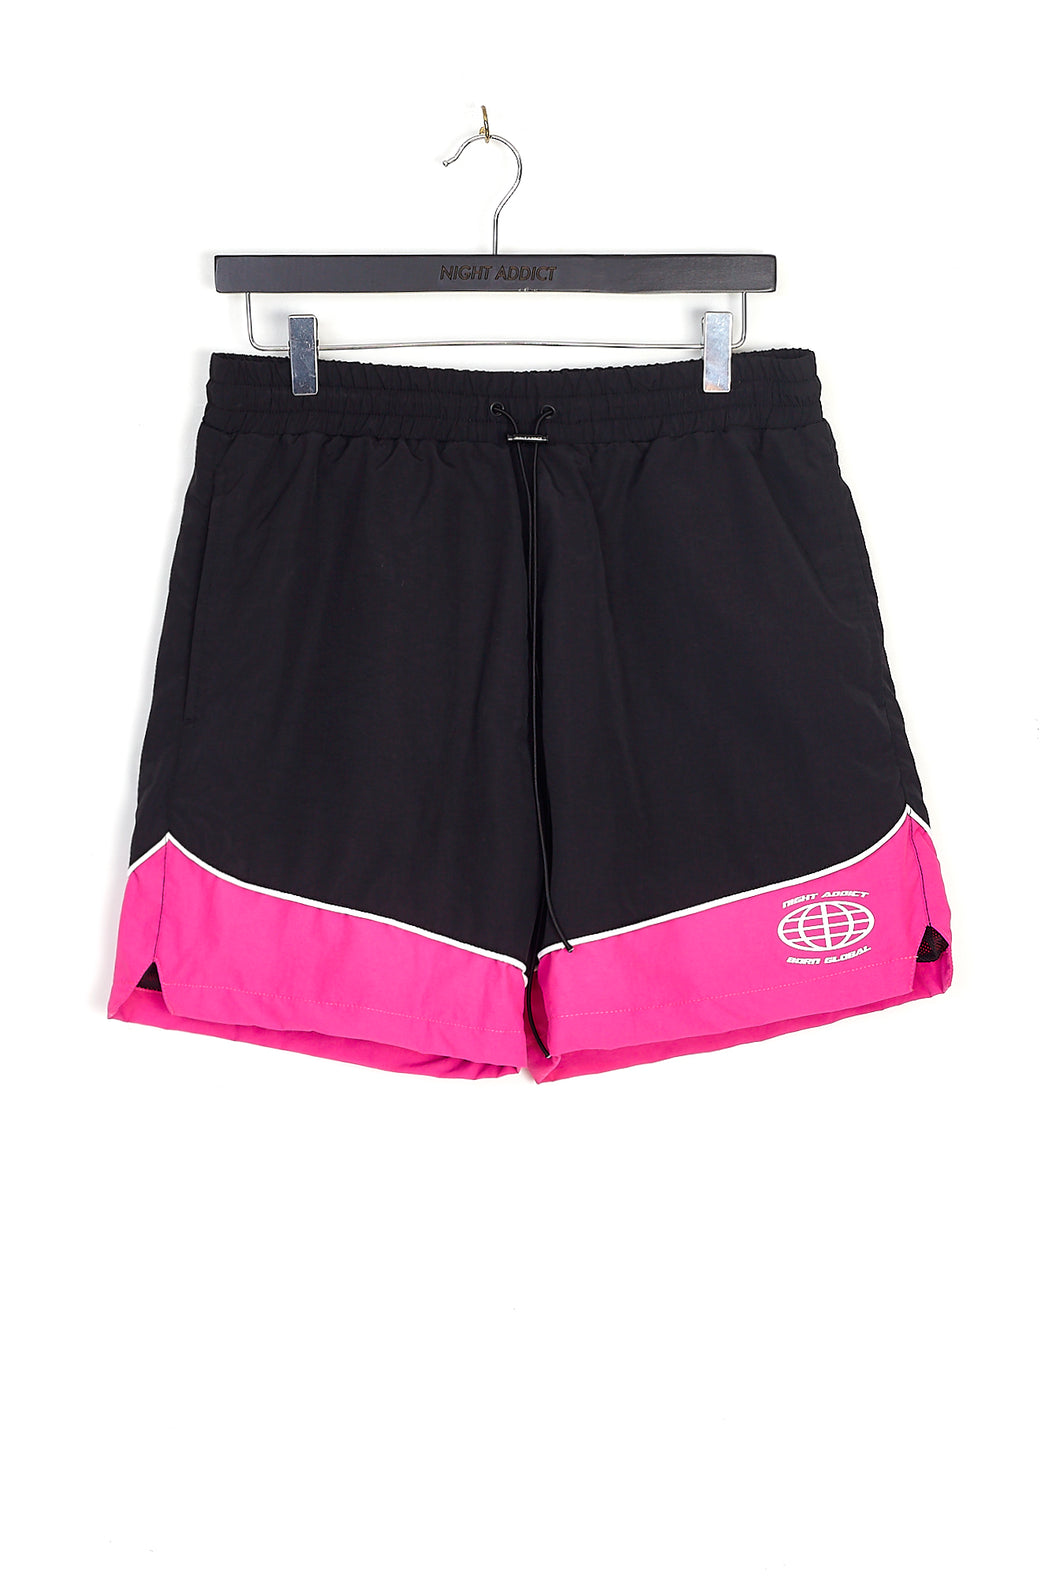 NIGHT ADDICT RETRO PINK PANEL NYLON SHORTS